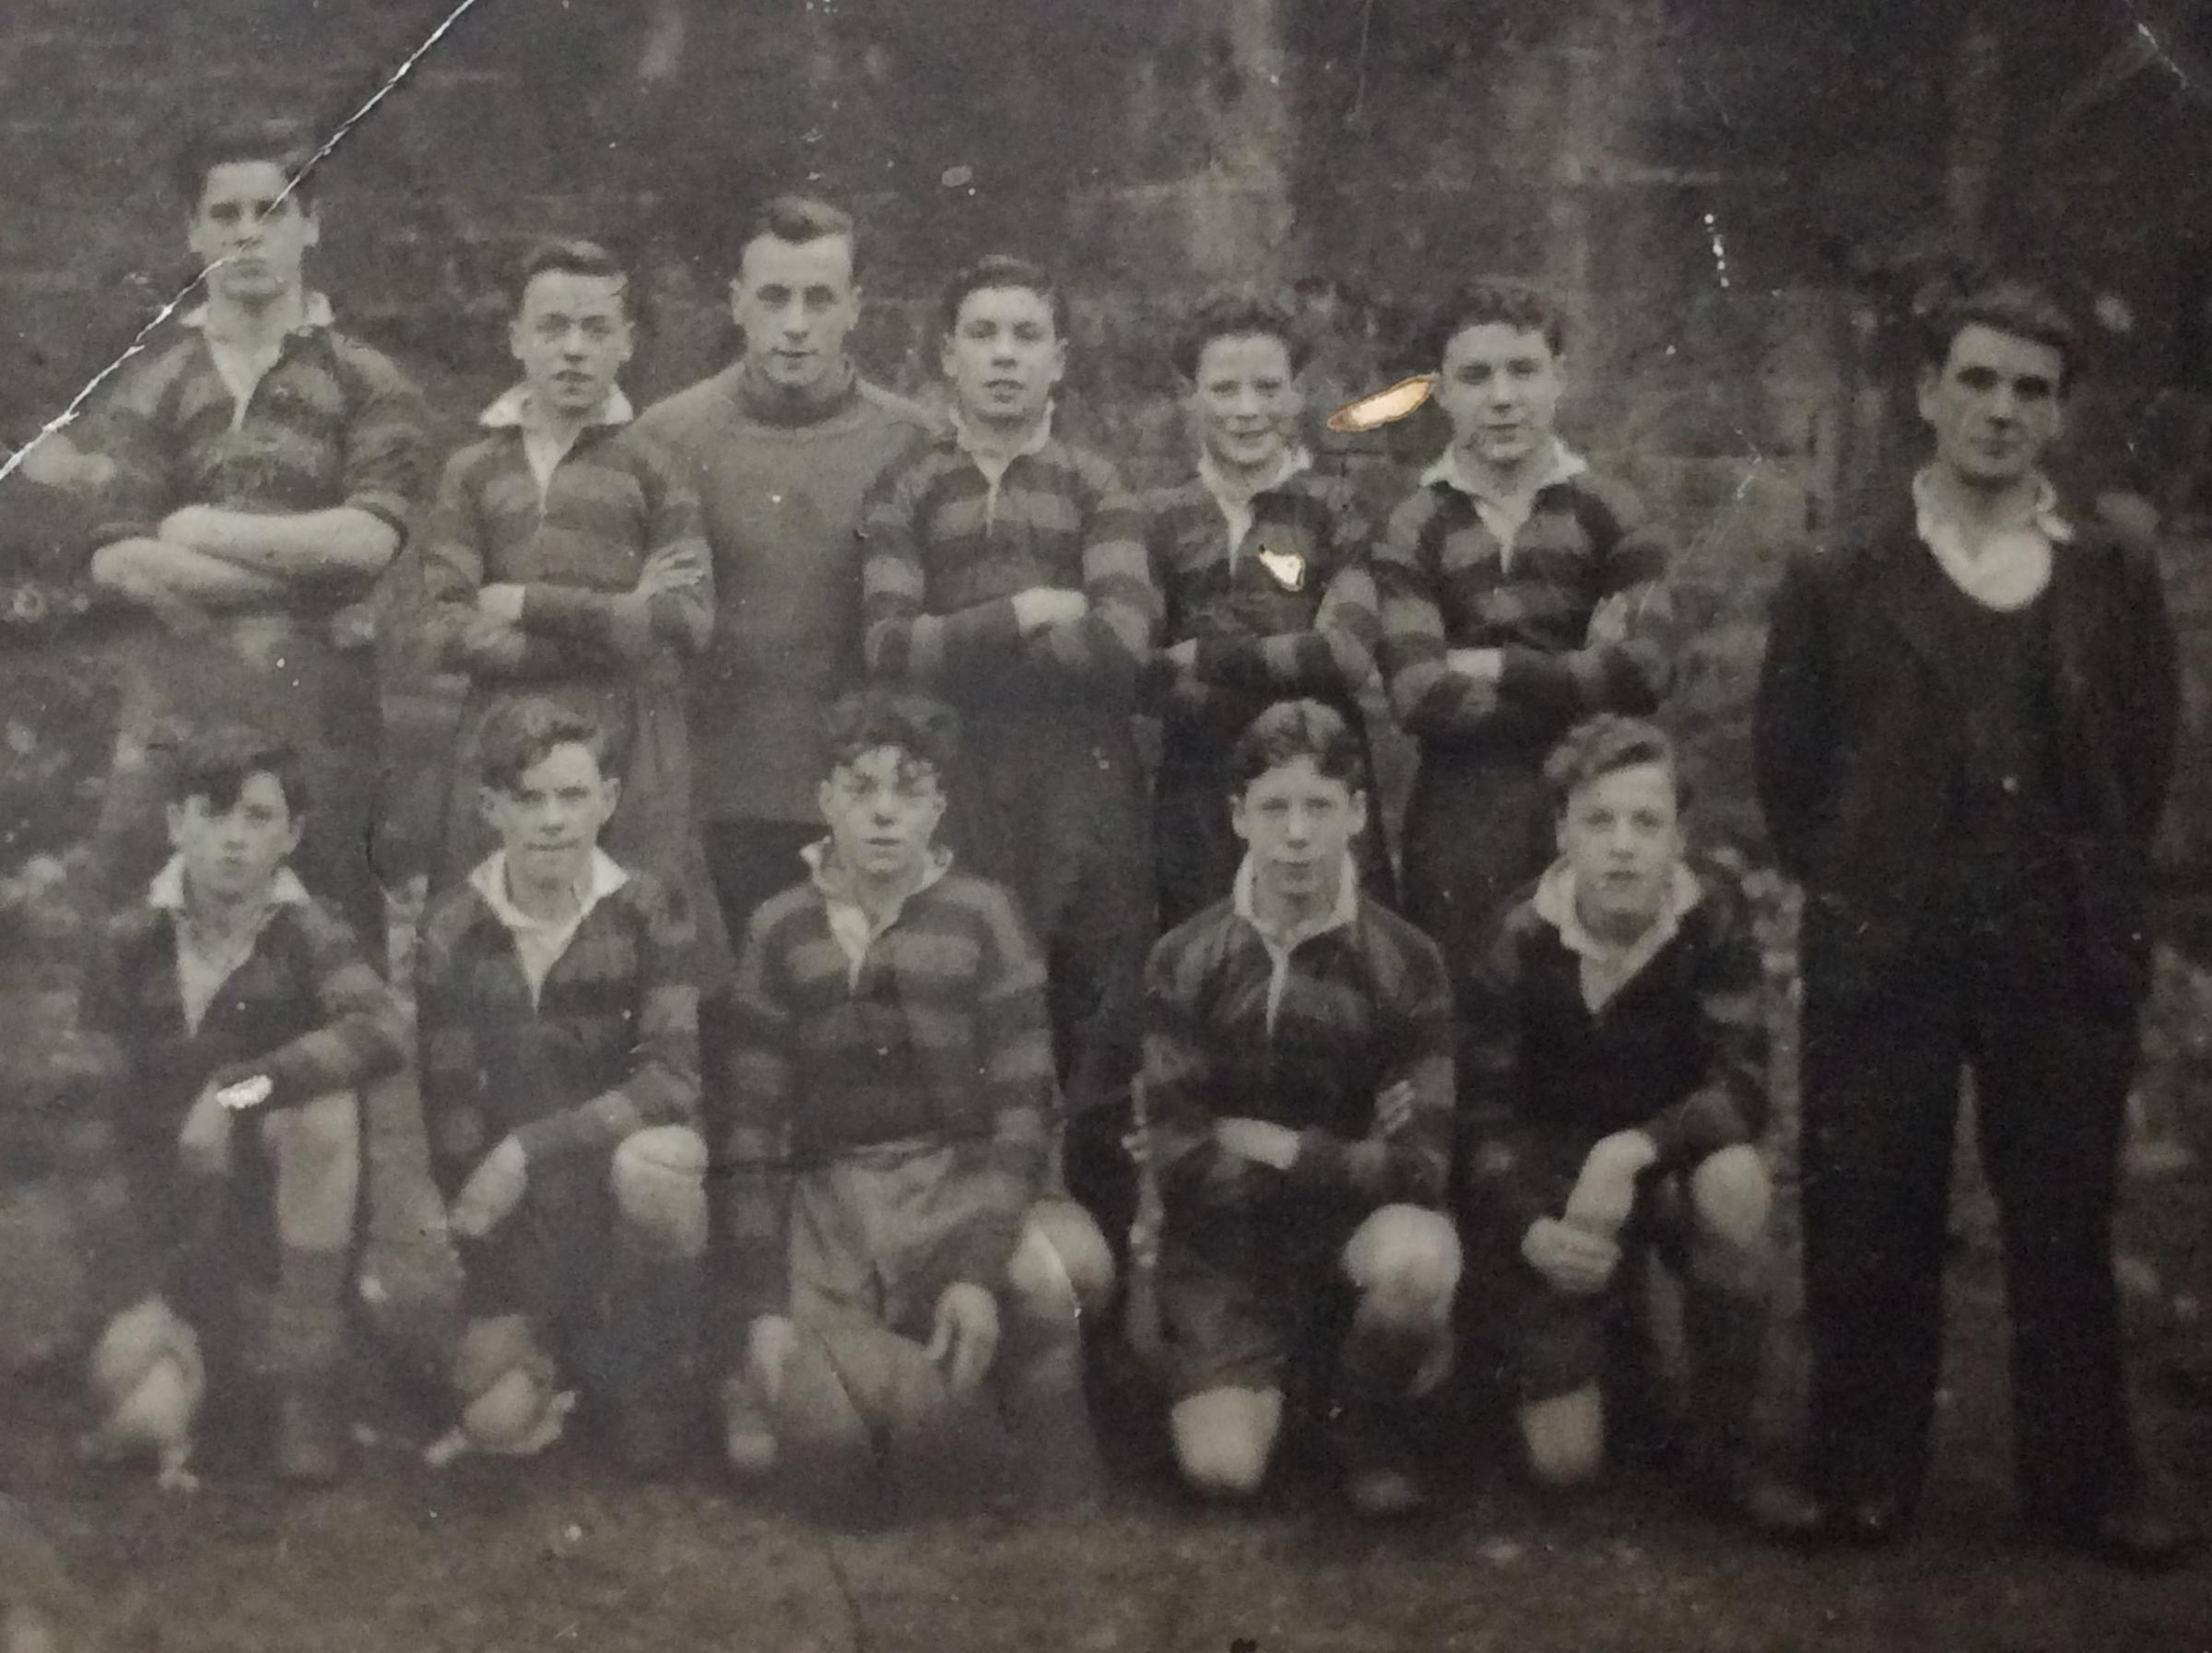 Glasgow memories: The day Maryhill schoolboys got arrested for playing football on the street...